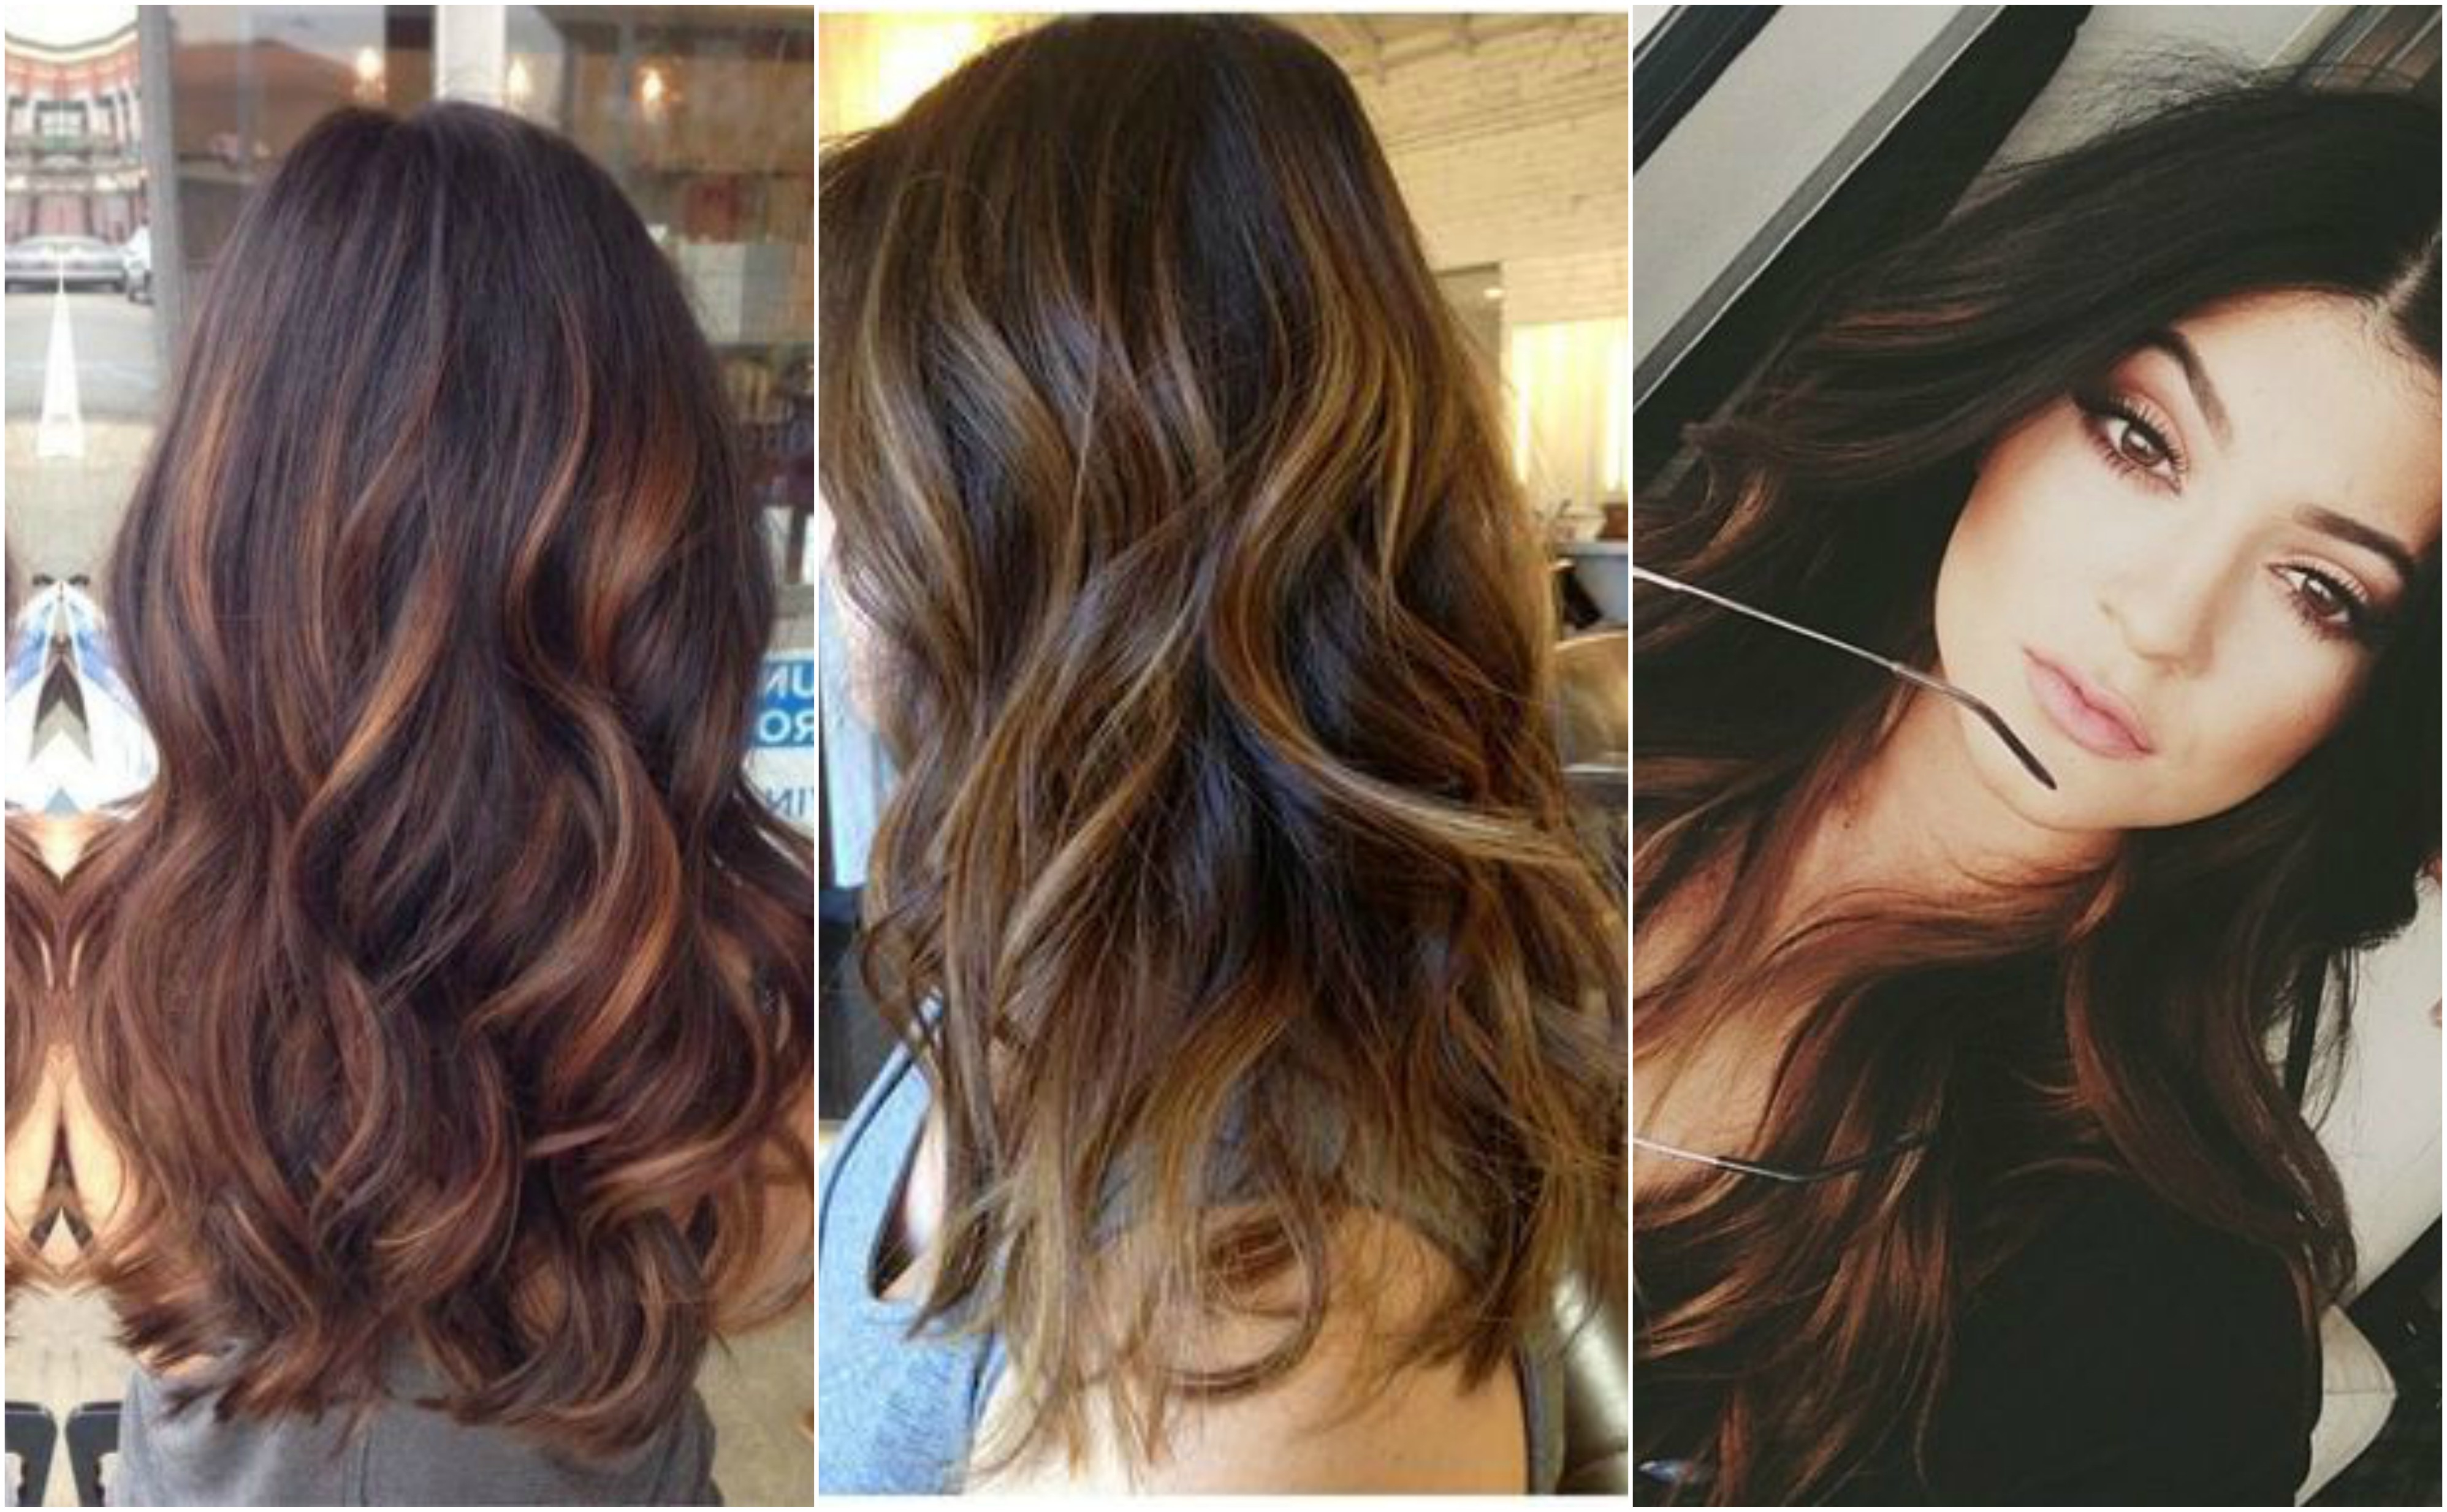 The 9 Best Ways To Highlight Your Hair Using The Balayage Technique For Brown Curly Hairstyles With Highlights (View 20 of 20)